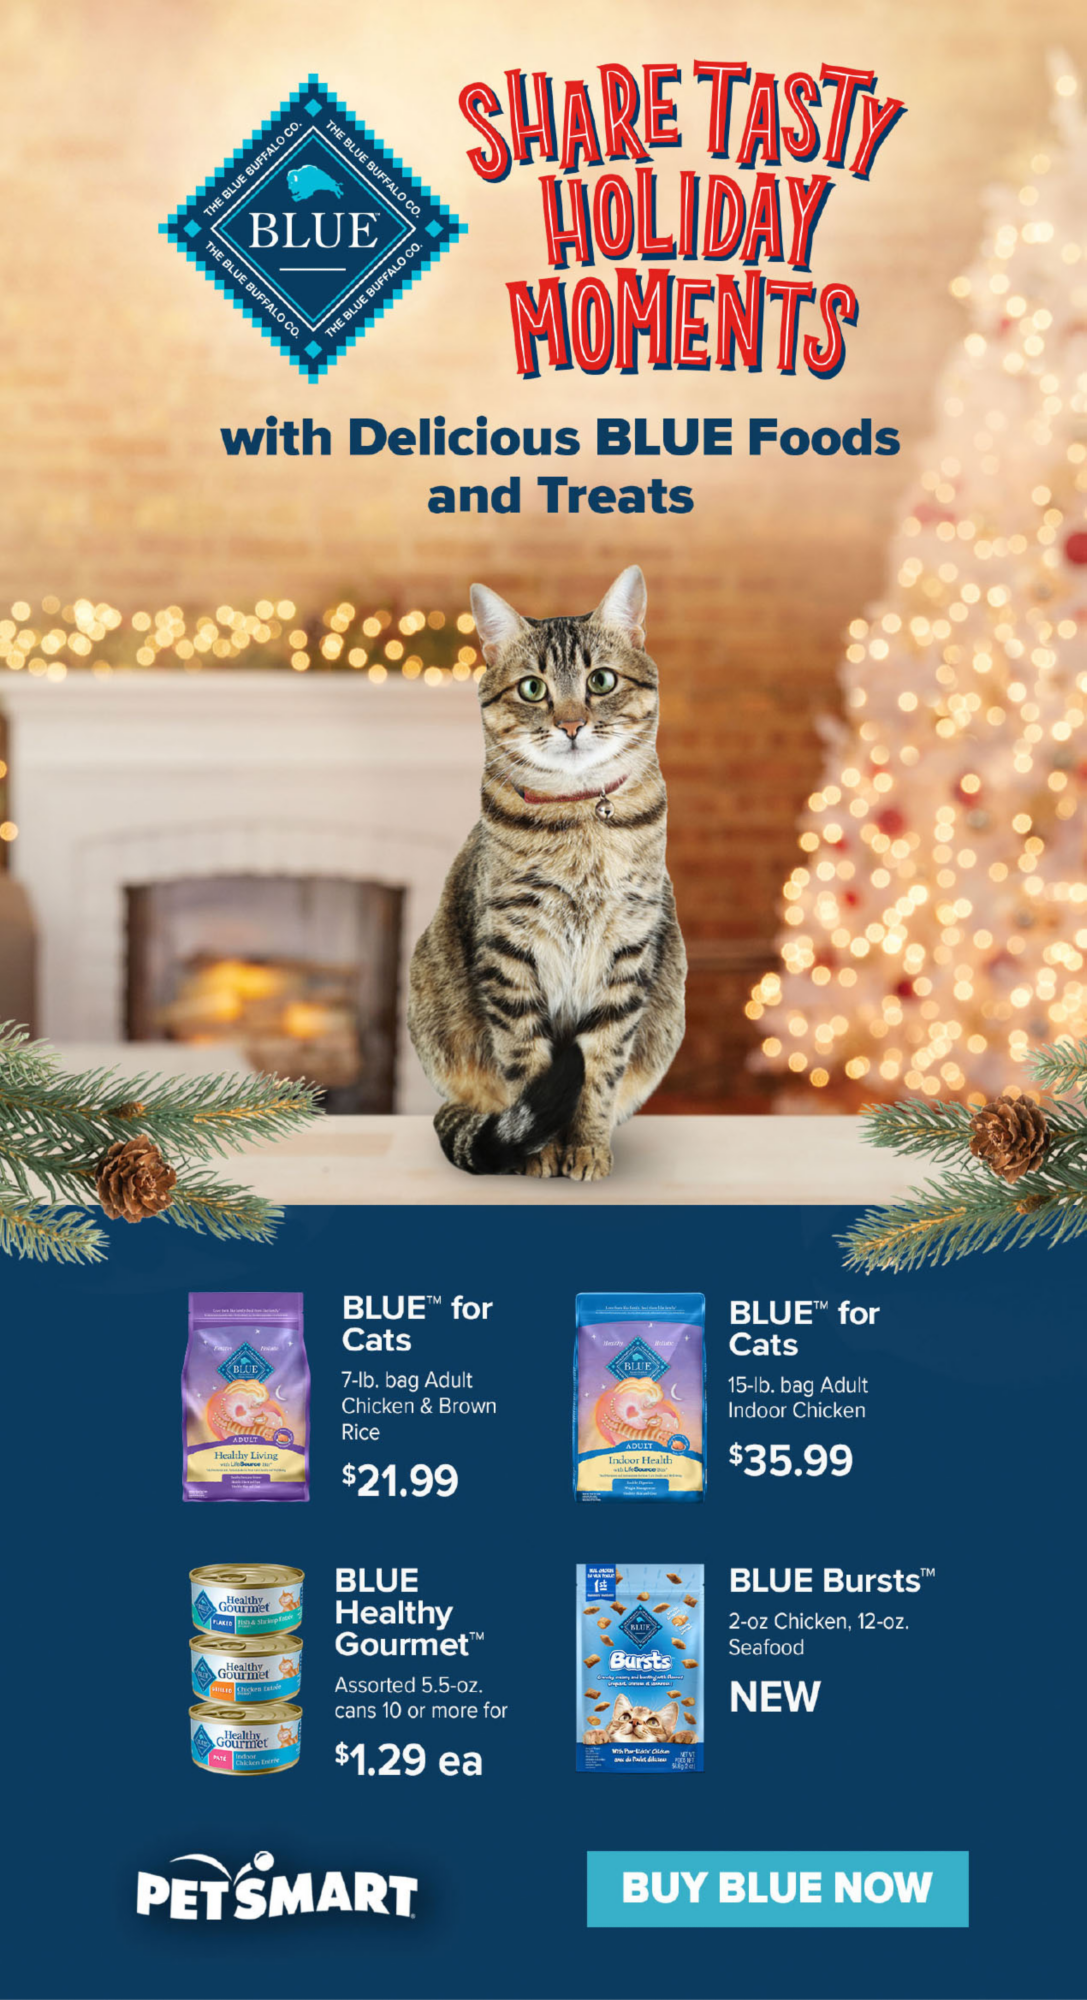 SHARE TASTY HOLIDAY MOMENTS with Delicious BLUE Foods and Treats                             BLUE™ for Cats 7-lb. bag Adult Chicken & Brown Rice $21.99                             BLUE™ for Cats 15-lb. bag Adult Indoor Chicken                             BLUE Healthy Gourmet™ Assorted 5.5-oz. cans 10 or more for $1.29 ea                             BLUE™ Bursts 2-oz Chicken, 12-oz. Seafood NEW                                                           BUY BLUE NOW